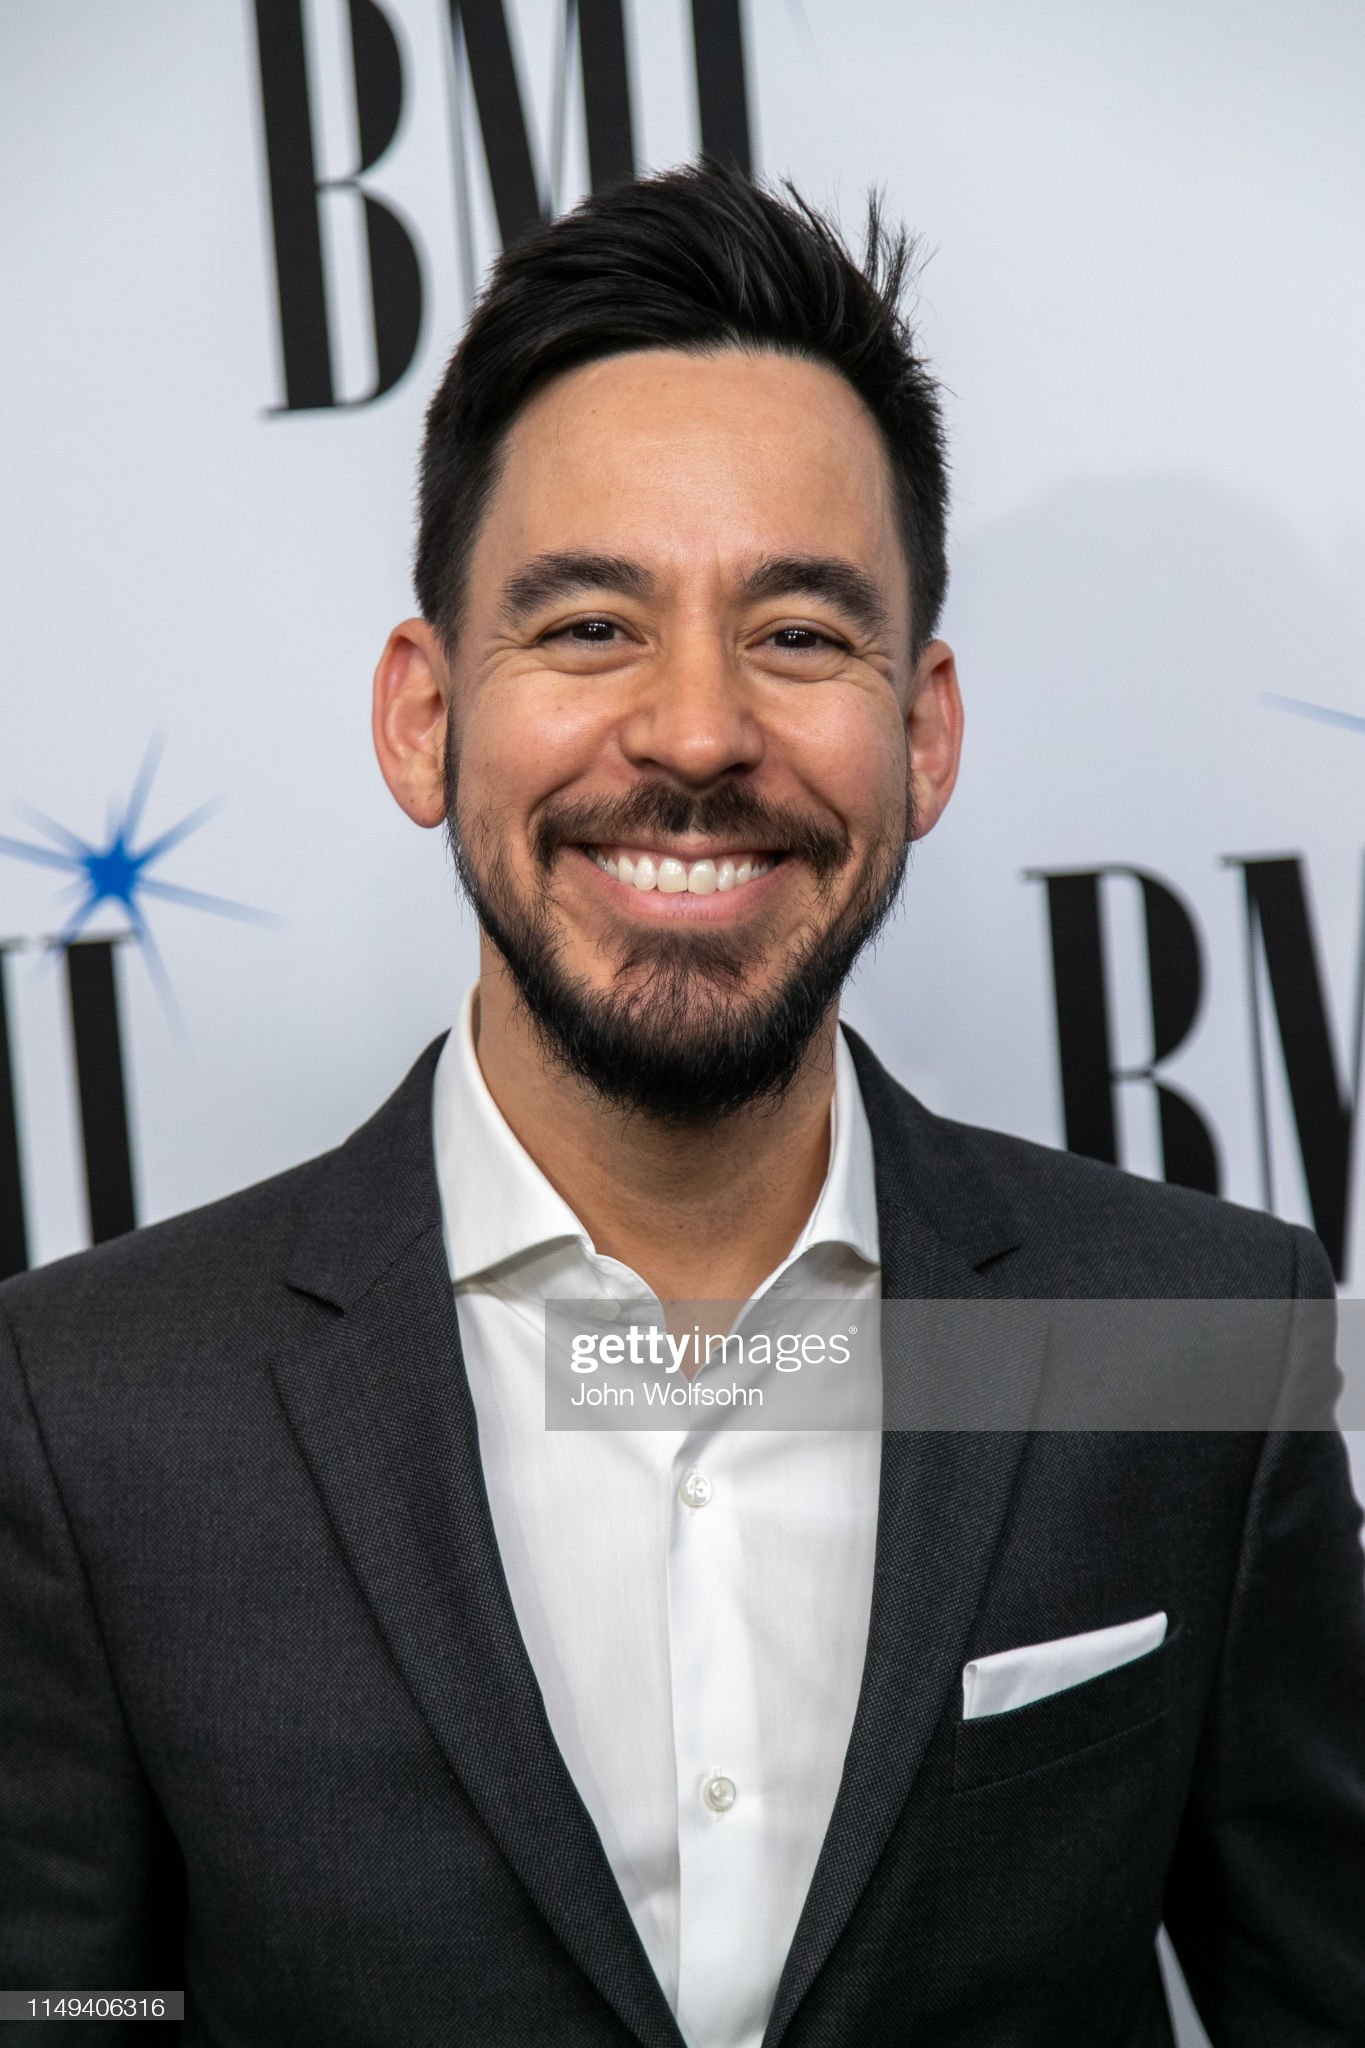 ¿Cuánto mide Mike Shinoda? - Altura - Real height Mike-shinoda-attend-the-35th-annual-bmi-film-tv-visual-media-awards-picture-id1149406316?s=2048x2048